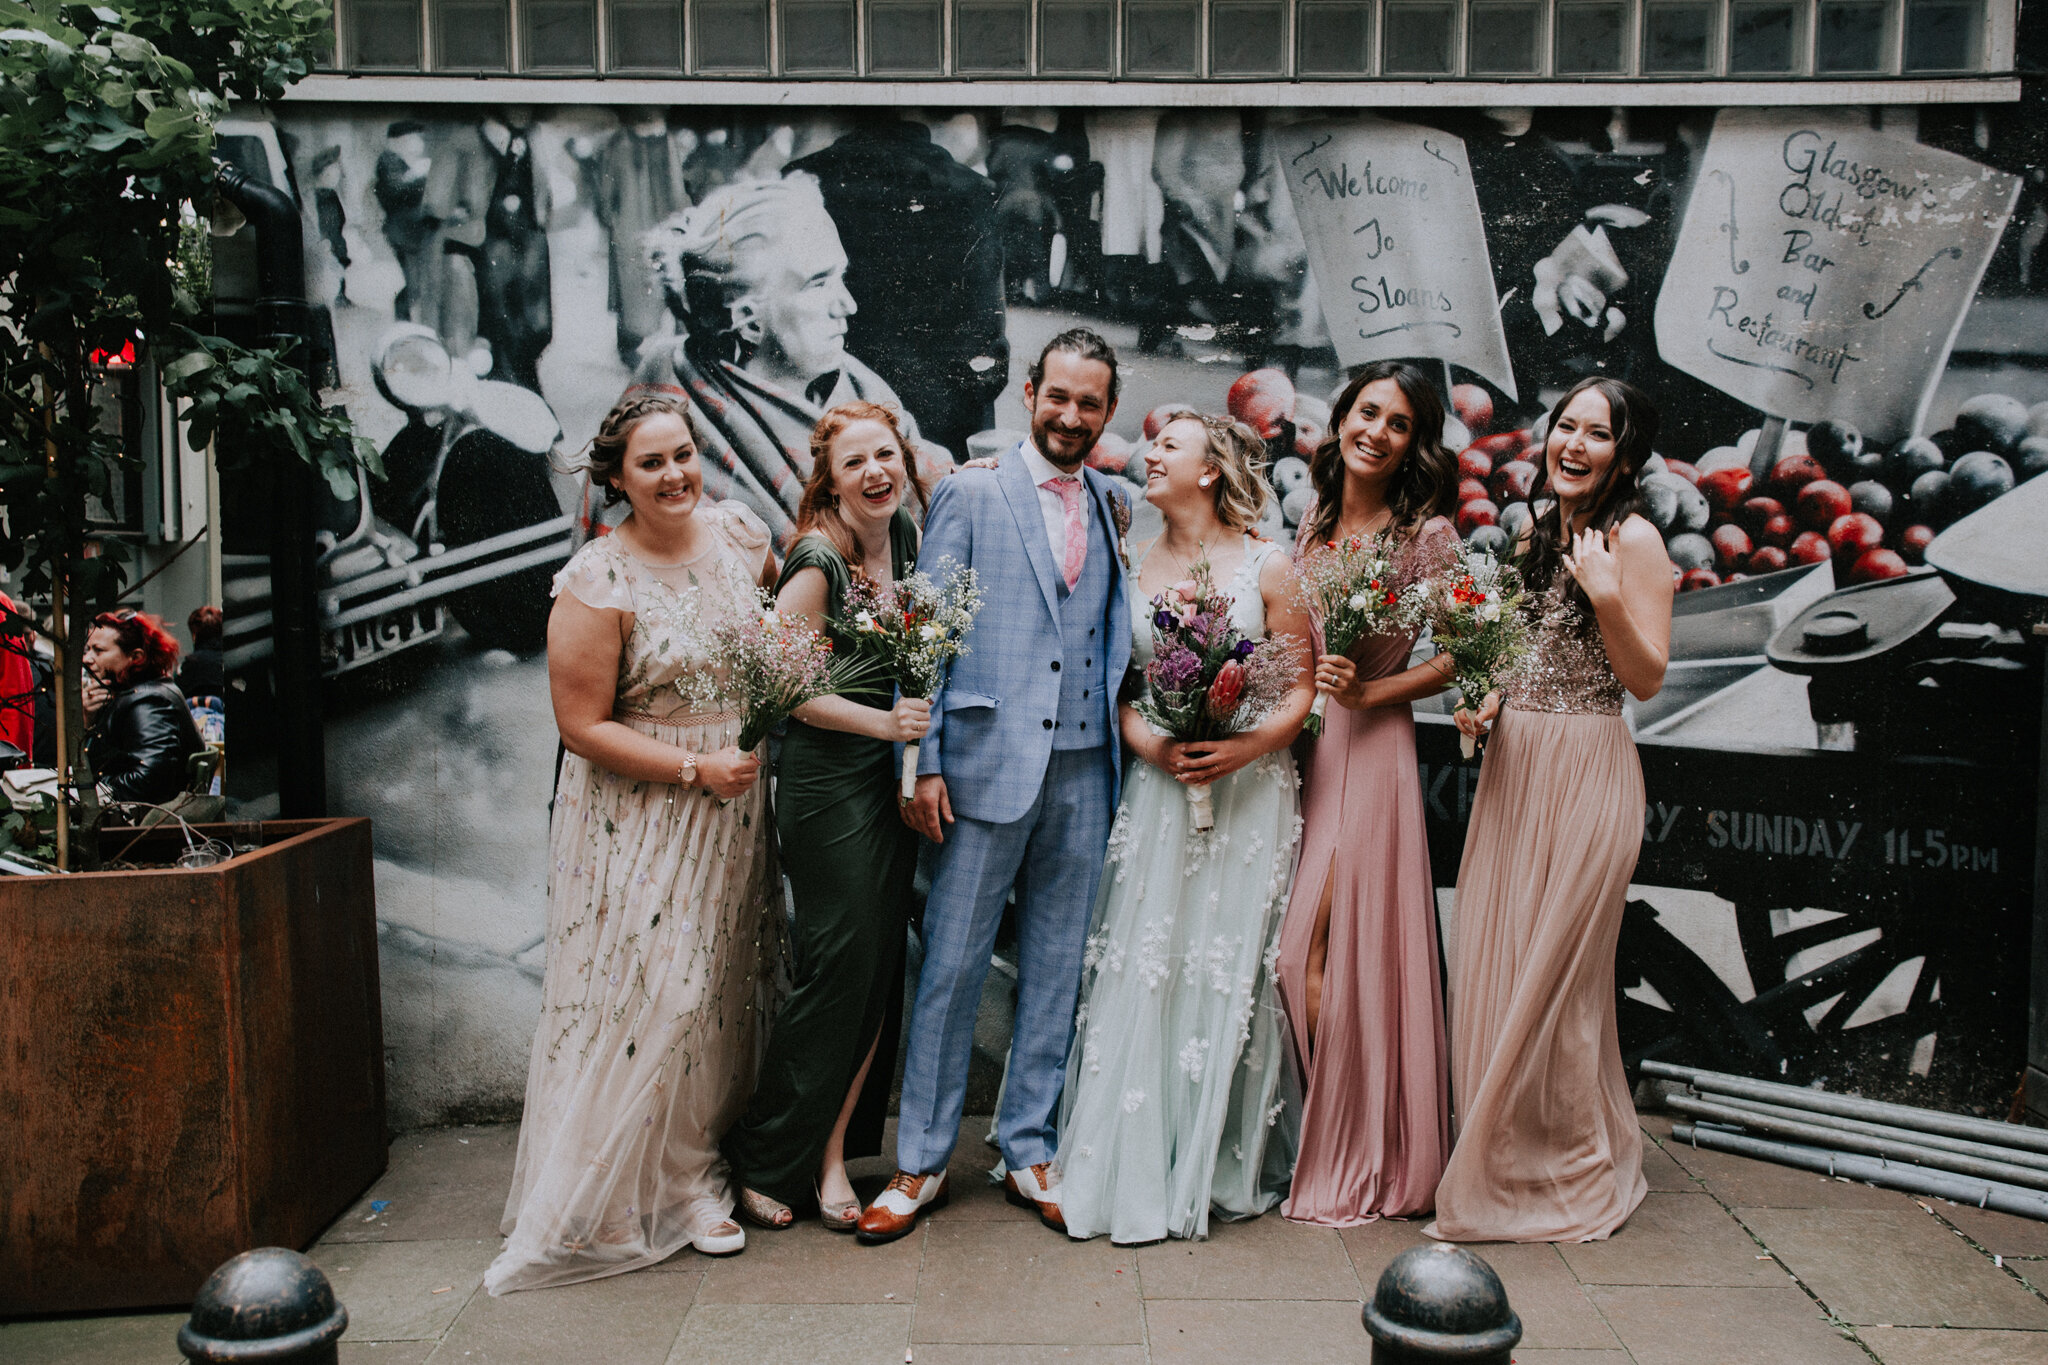 A fun, relaxed and alternative photo with the bridal party at Sloans